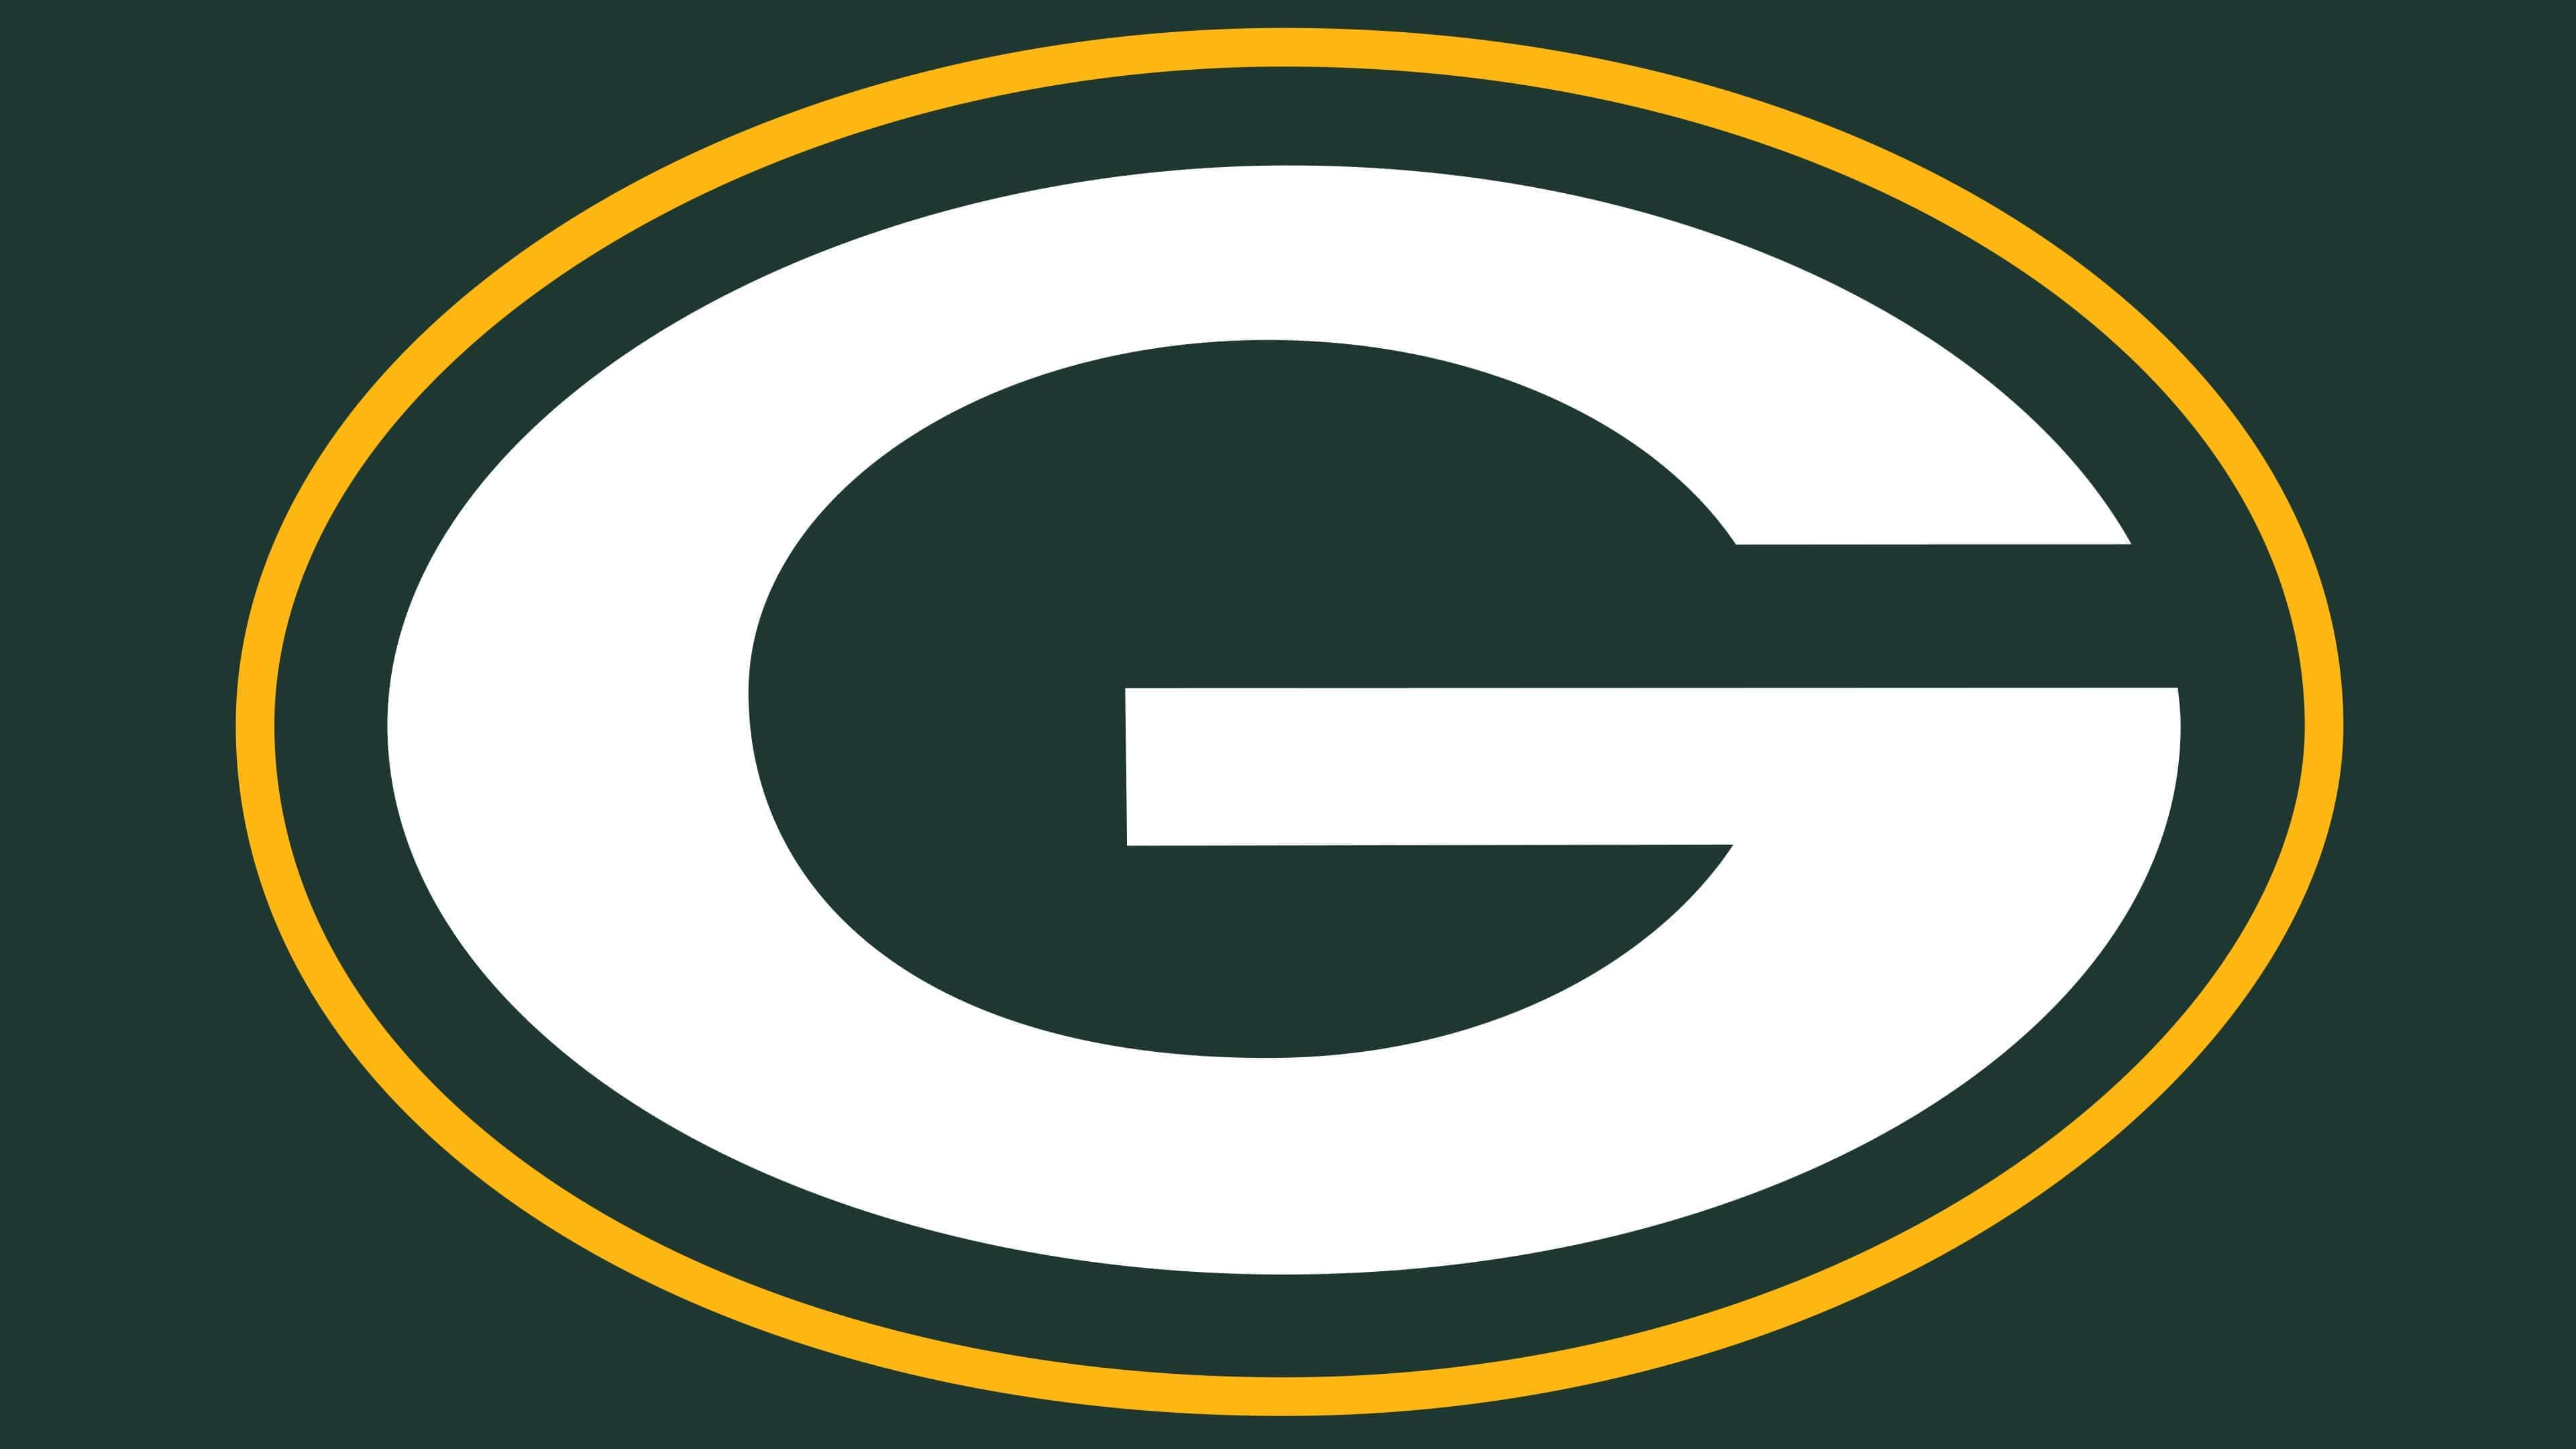 Green Bay Packers Logo   The most famous brands and ...